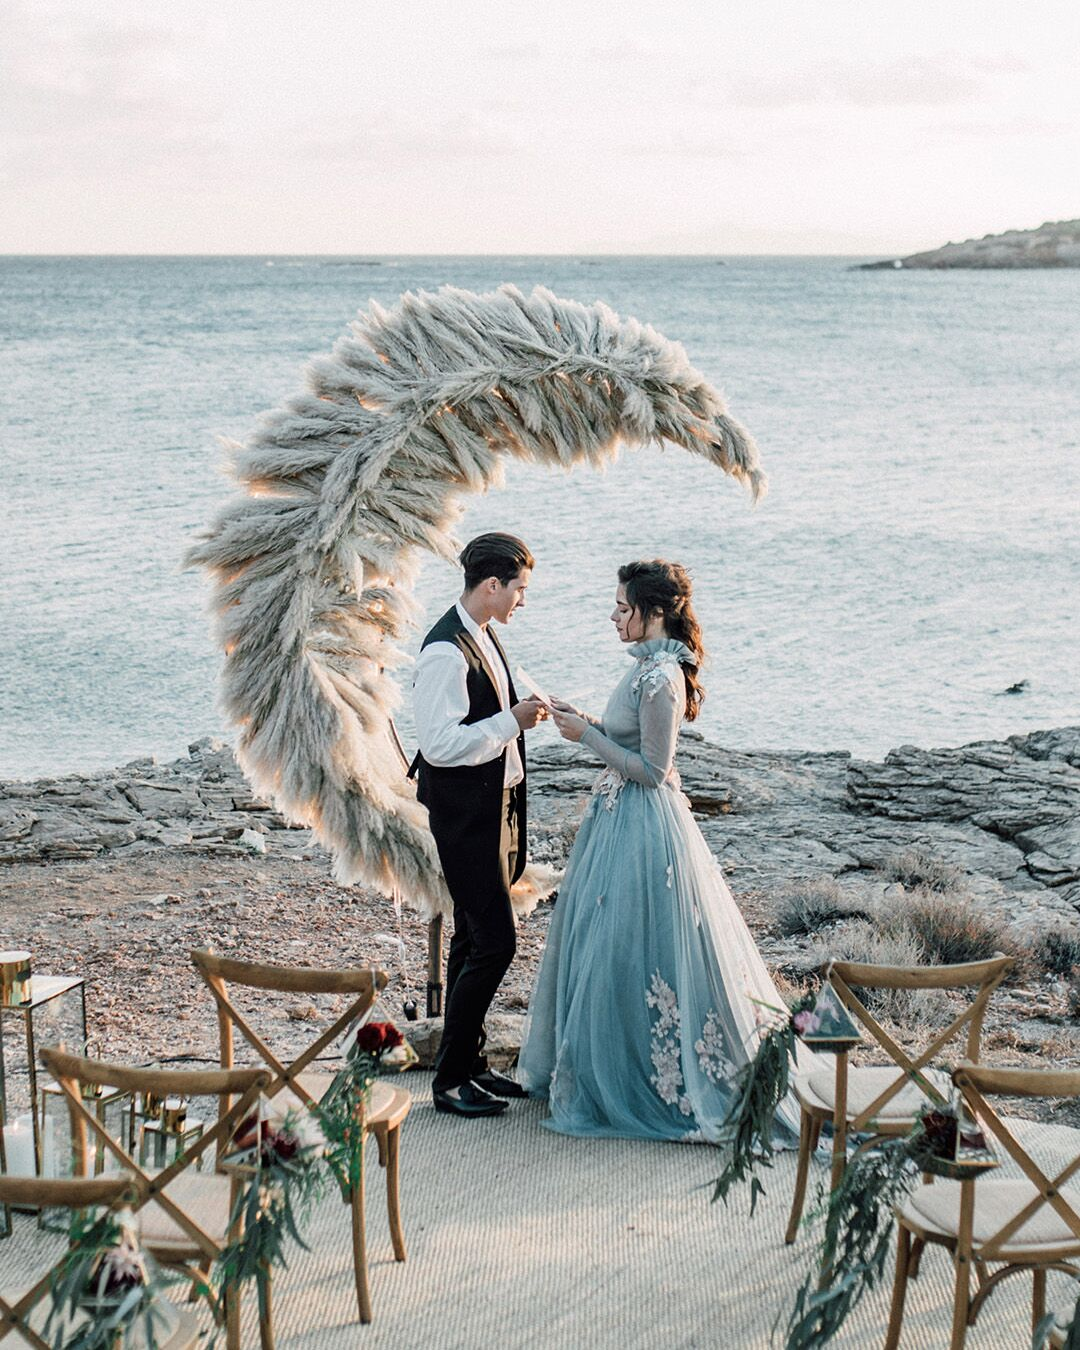 Unconventional Wedding Altar: 10 Most Popular Instagram Posts Of 2018